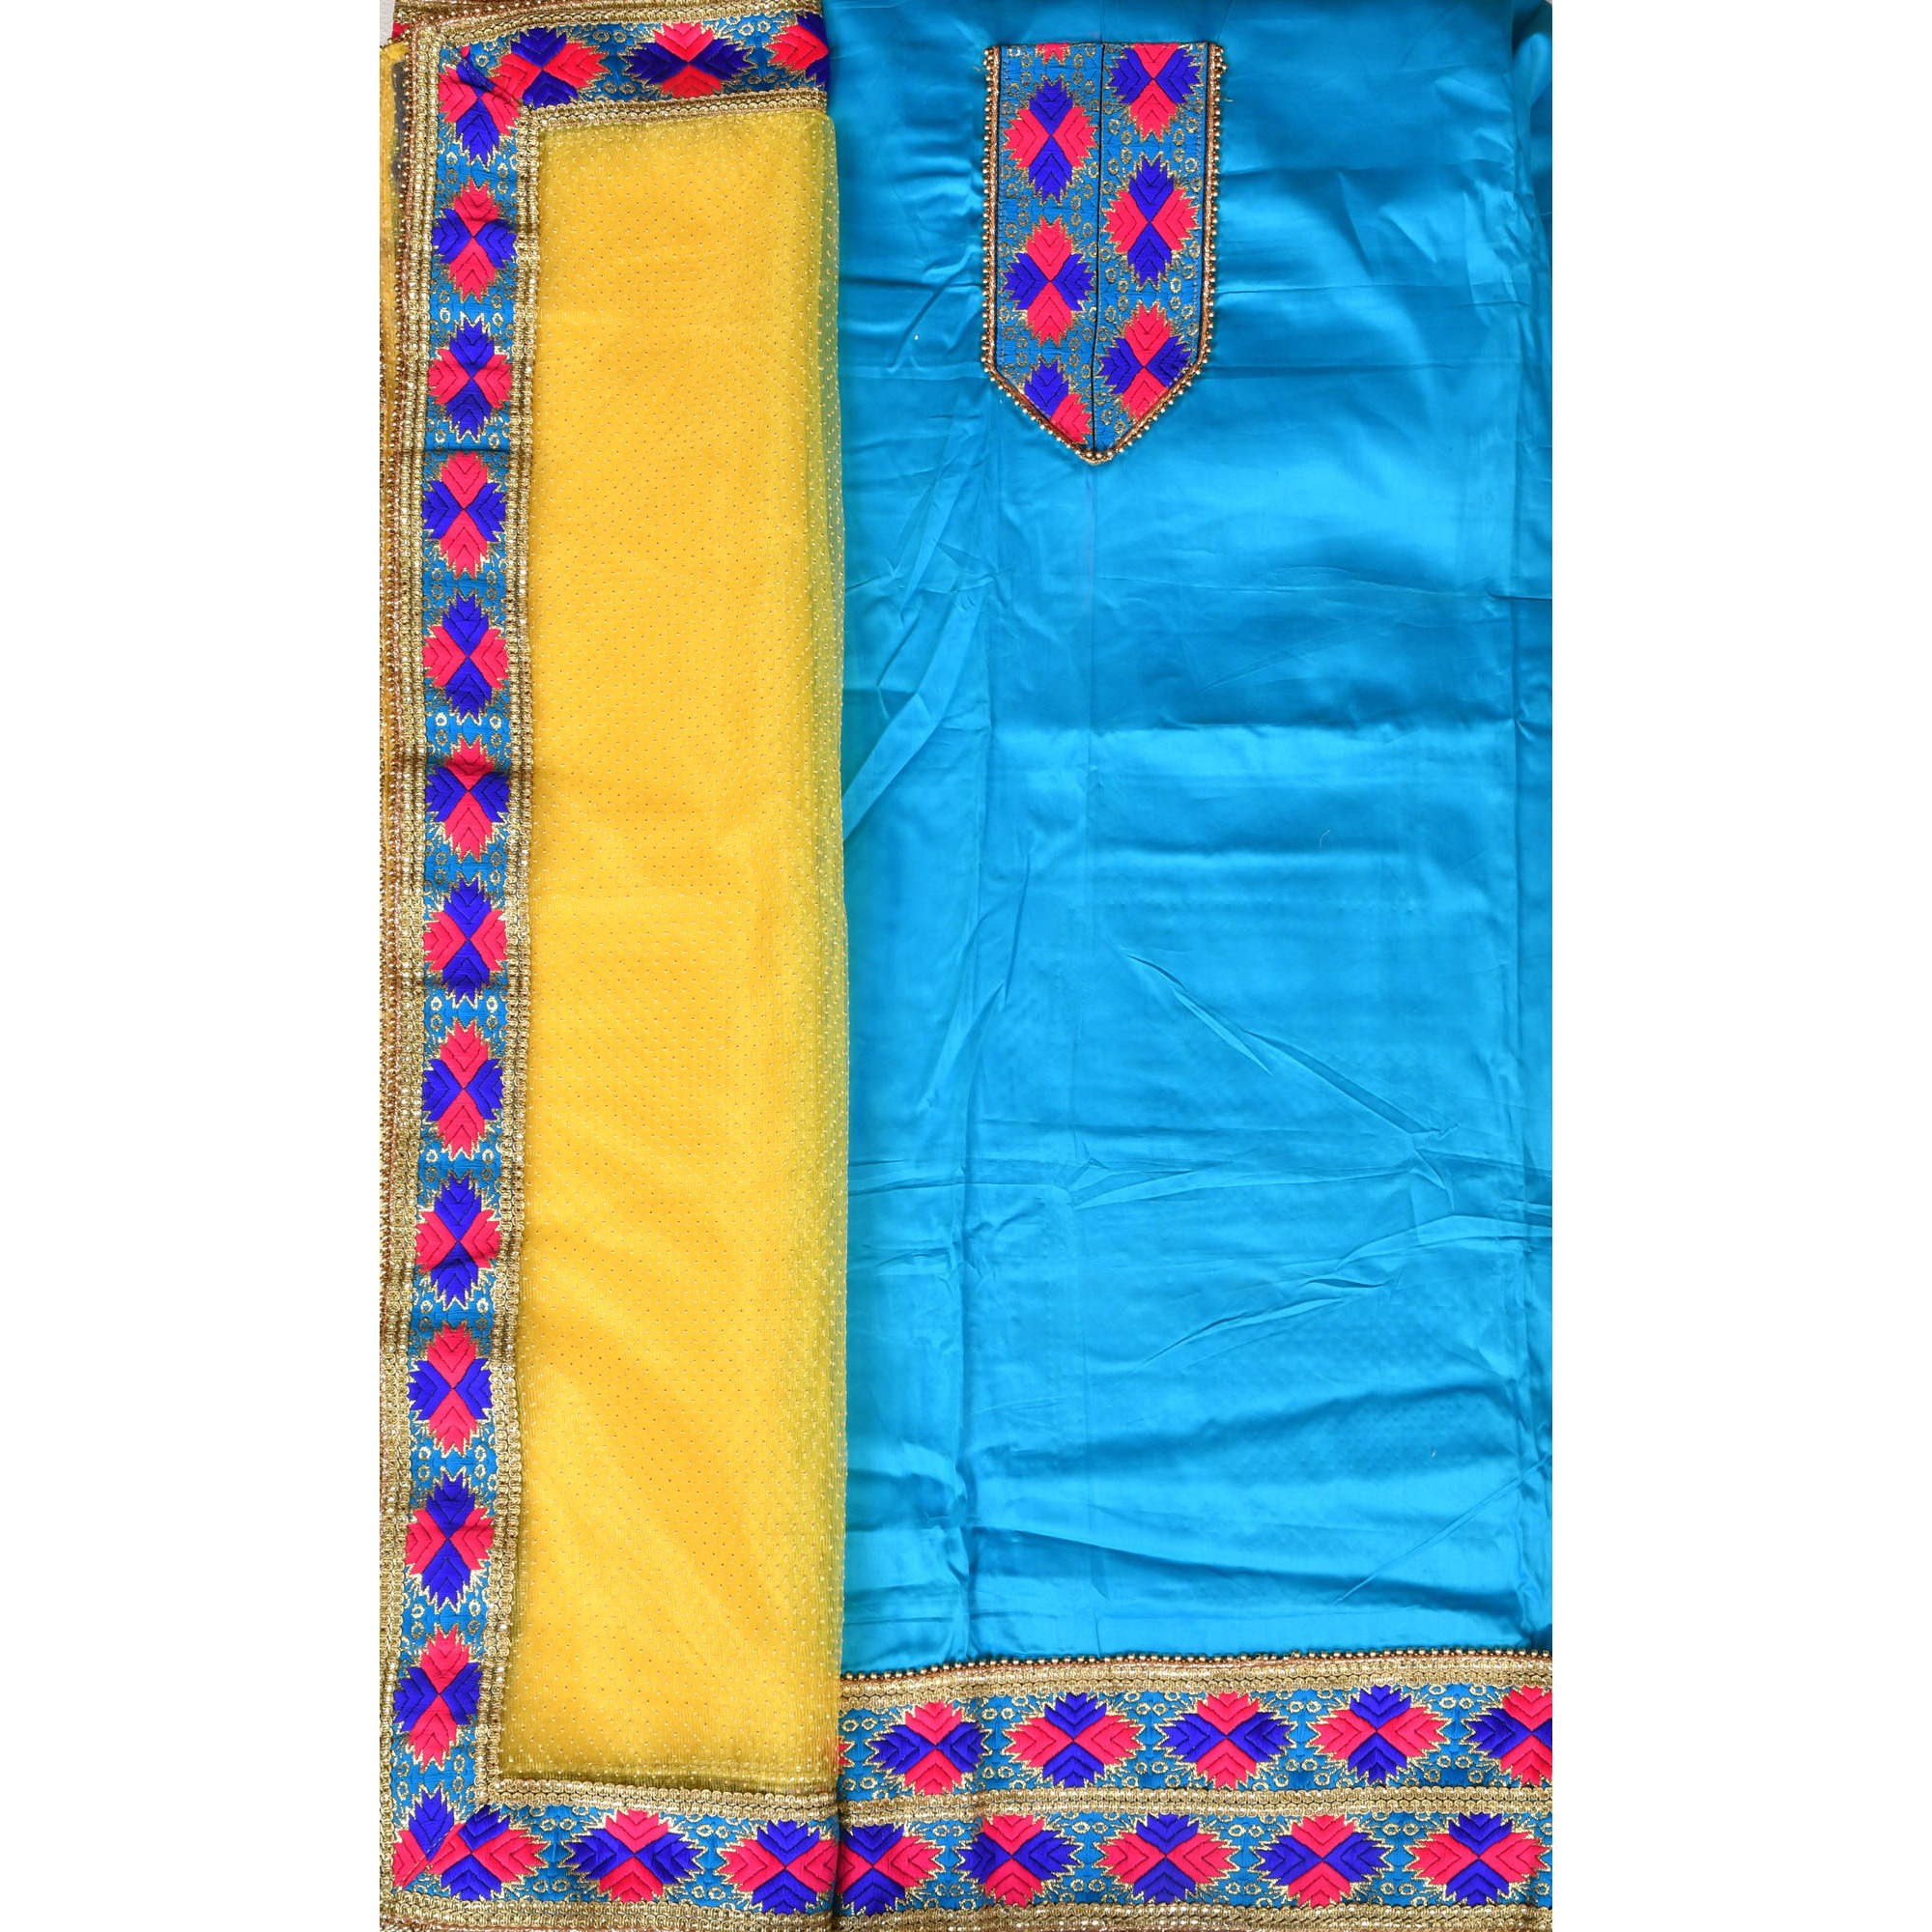 Cyan-Blue and Yellow Phulkari Salwar Kameez Fabric from Punjab with Embroidered Patches and Net Dupatta